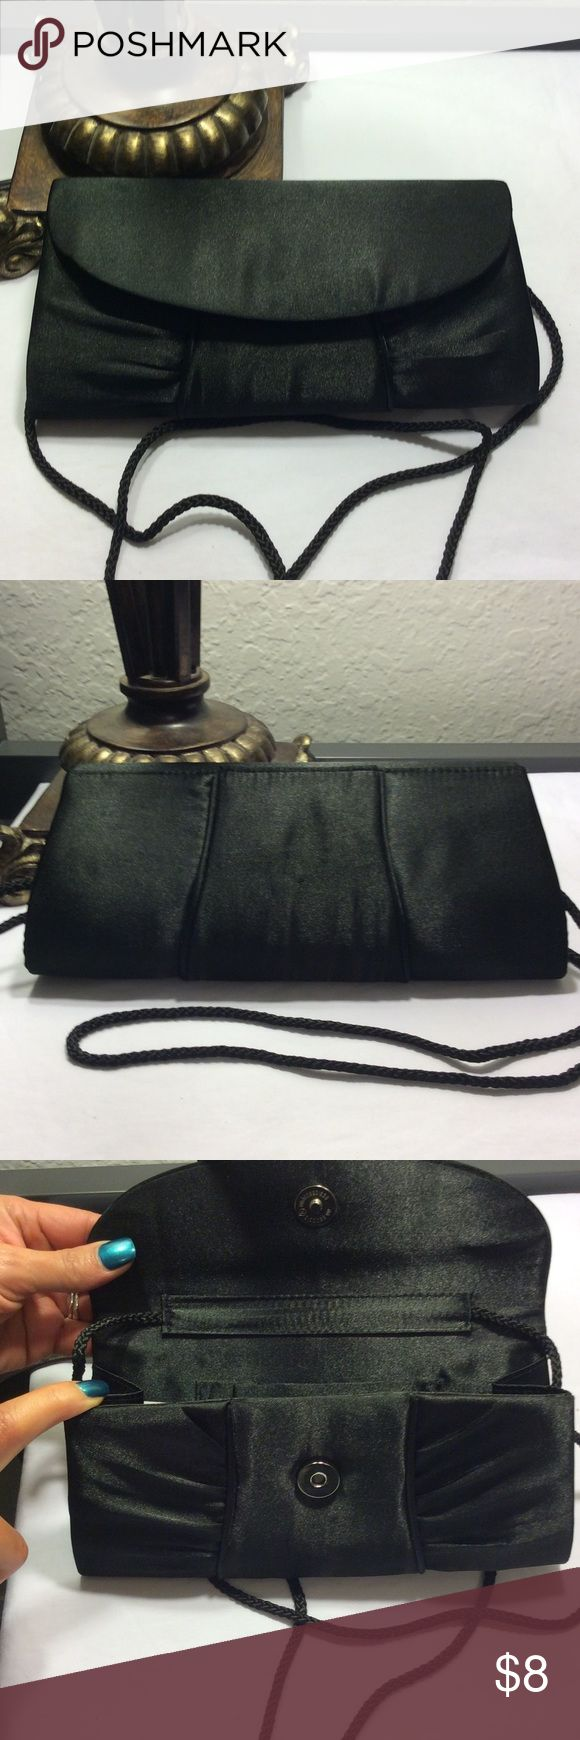 "Black dinner clutch/ handbag. Black, sateen formal clutch with chord styled strap. Dimensions are: 8.5"" L by 4"" H by 0.5"" W. Bags Clutches & Wristlets"